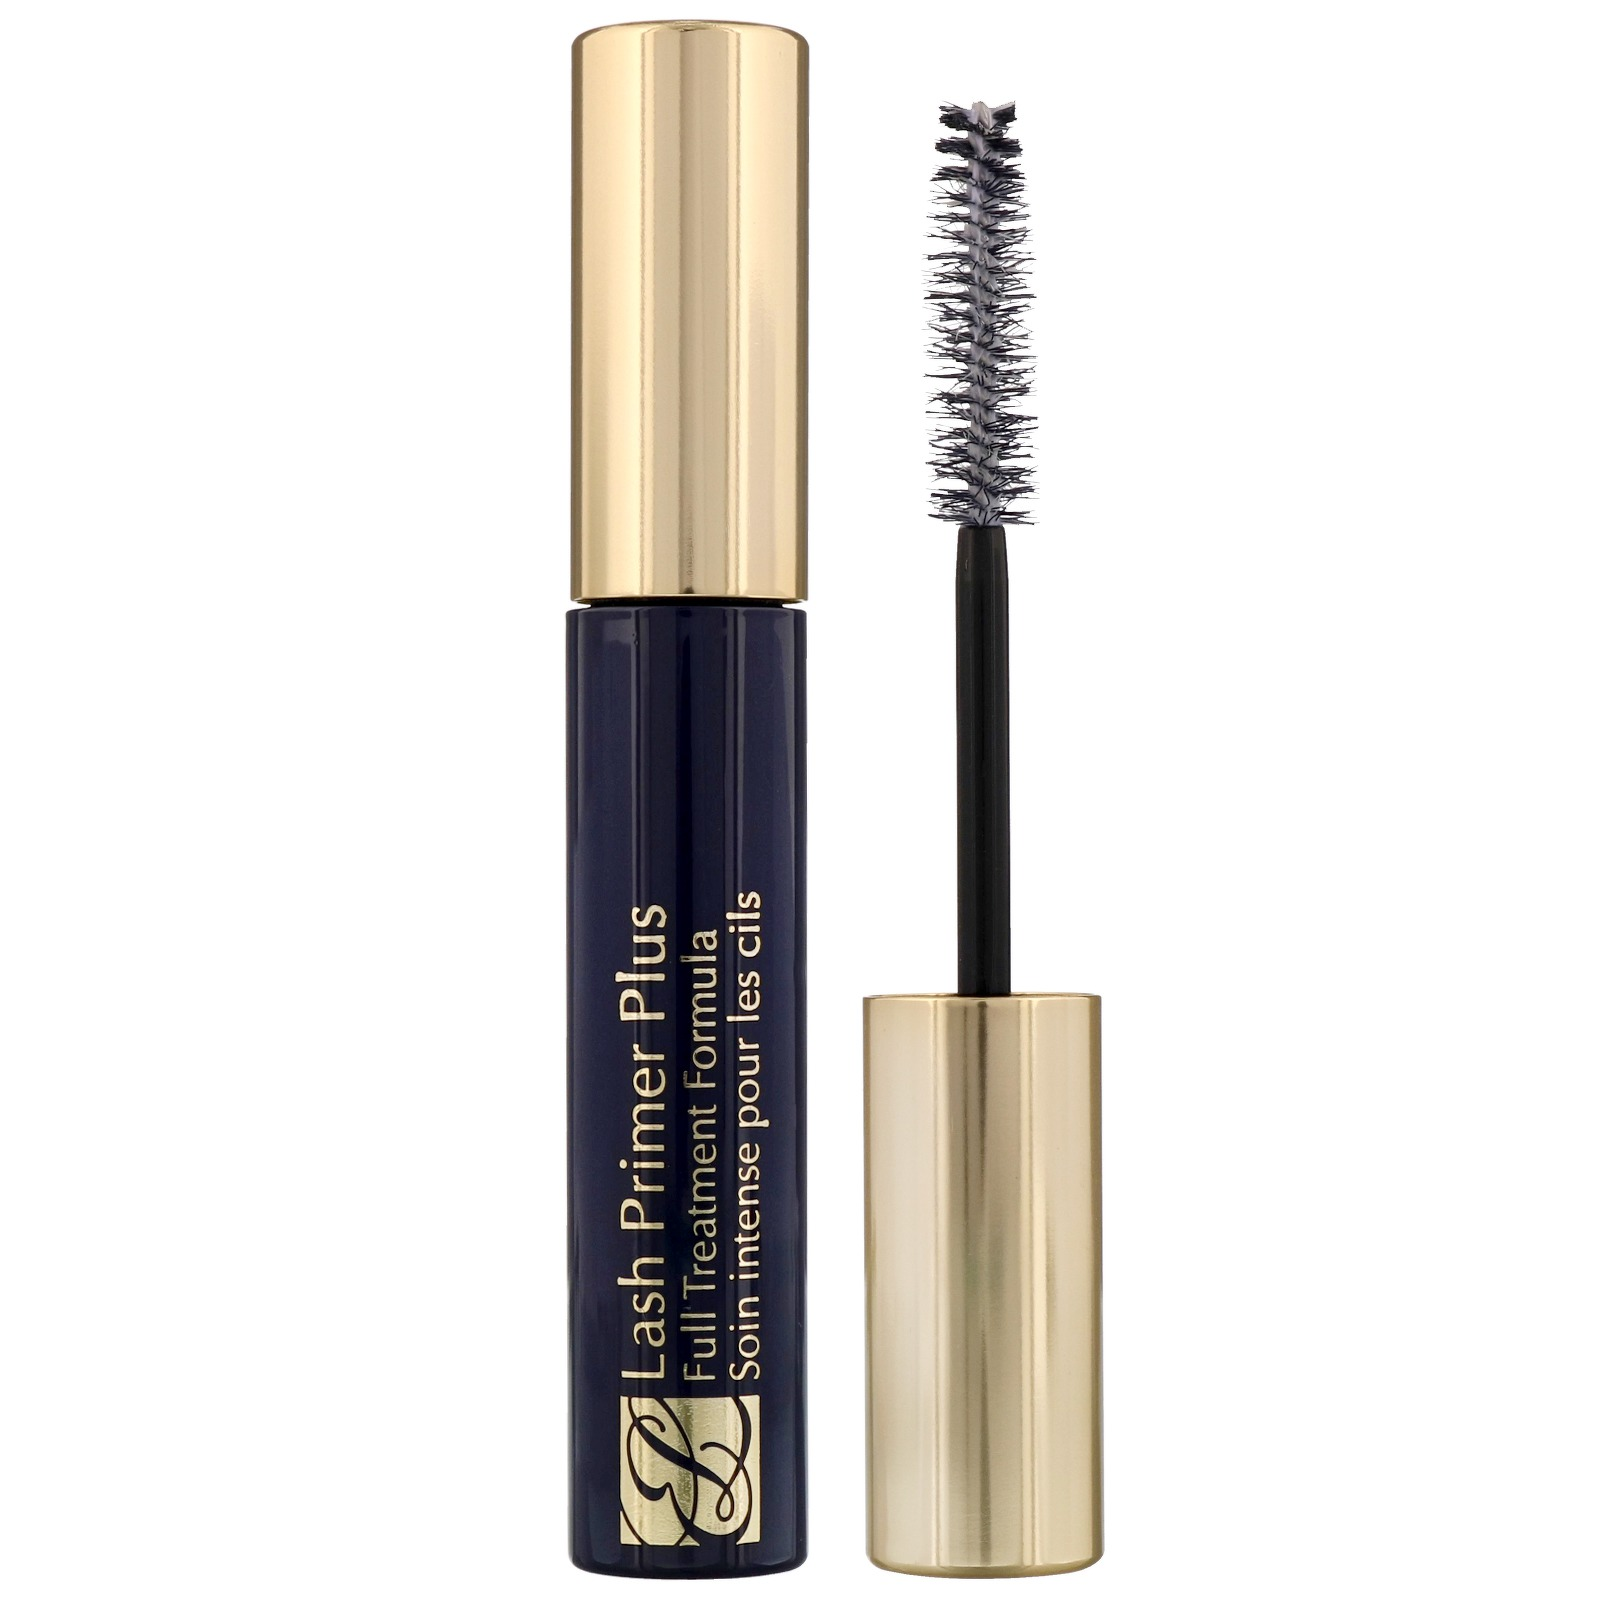 Estée Lauder Lash Primer Plus Full Treatment Formula 5ml